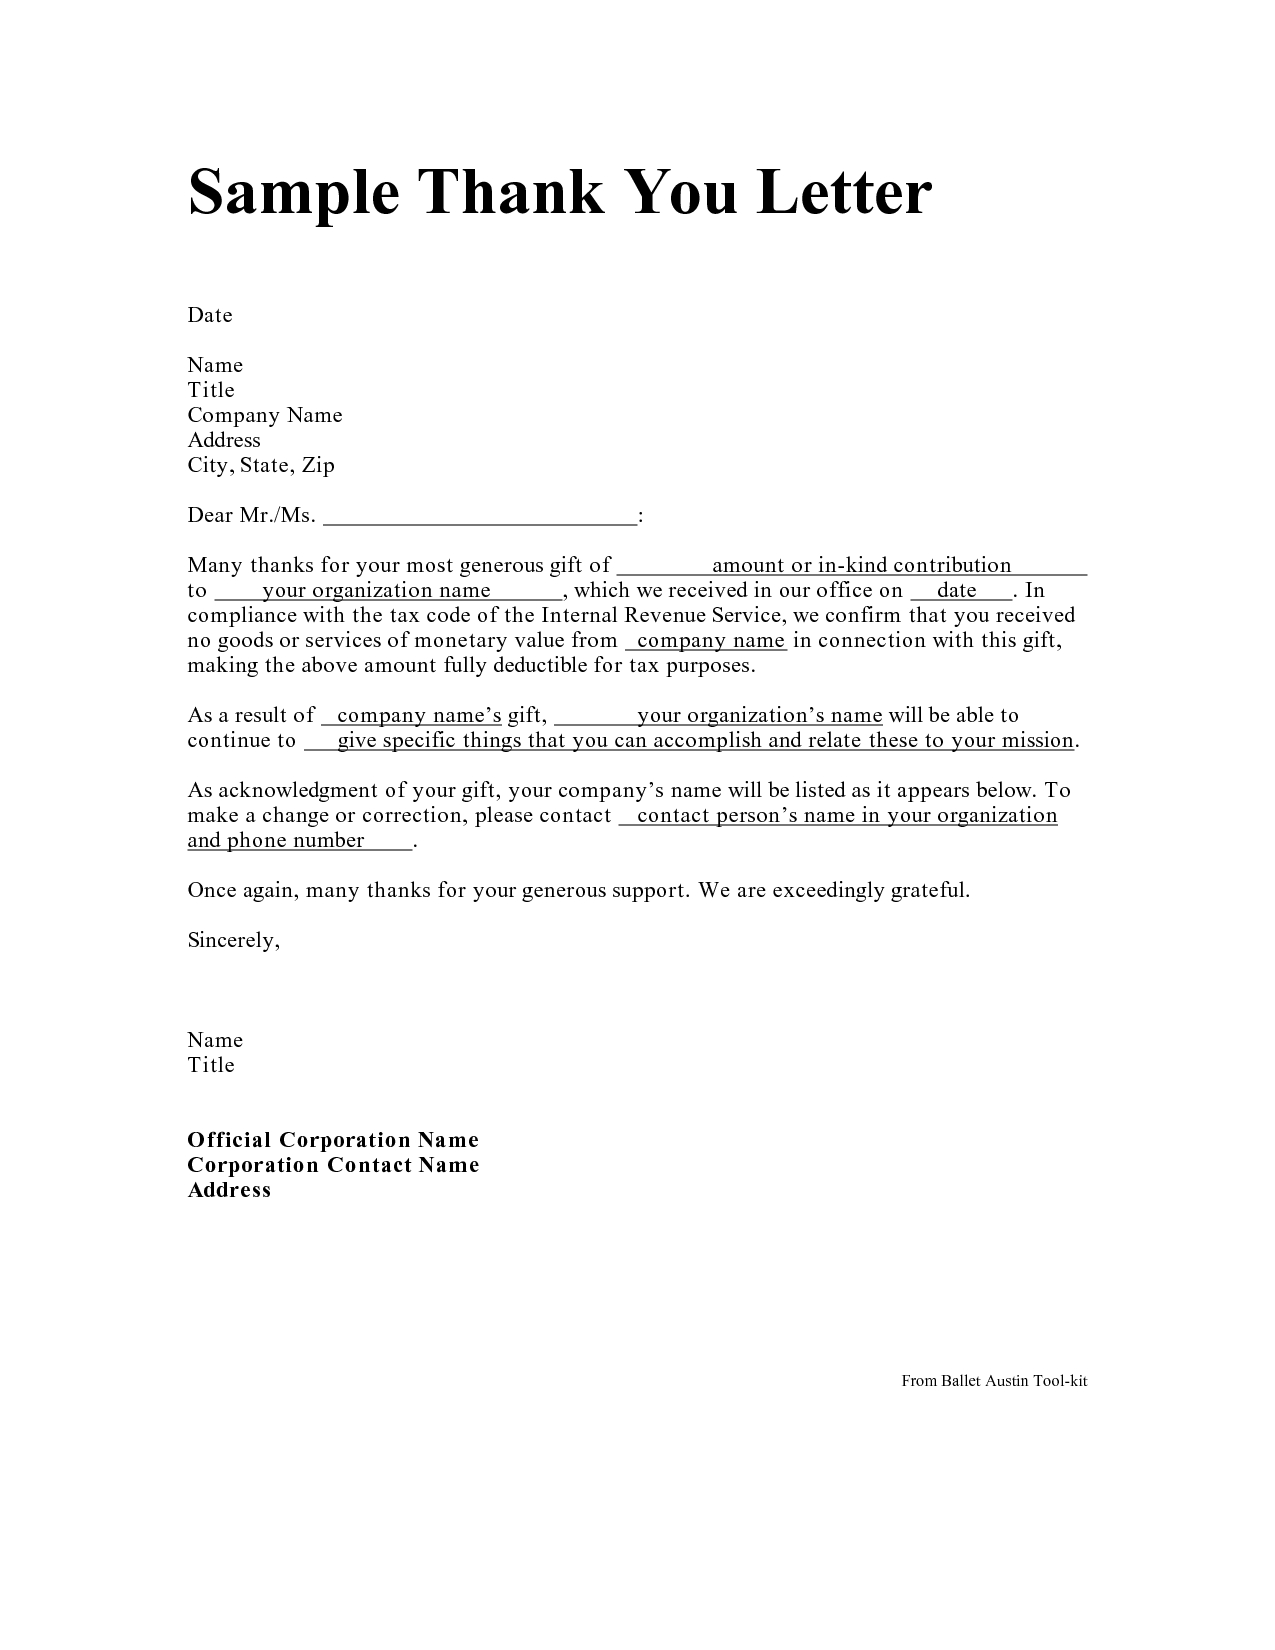 personal donation letter template example-Personal Thank You Letter Personal Thank You Letter Samples Writing Thank You Notes 7-a